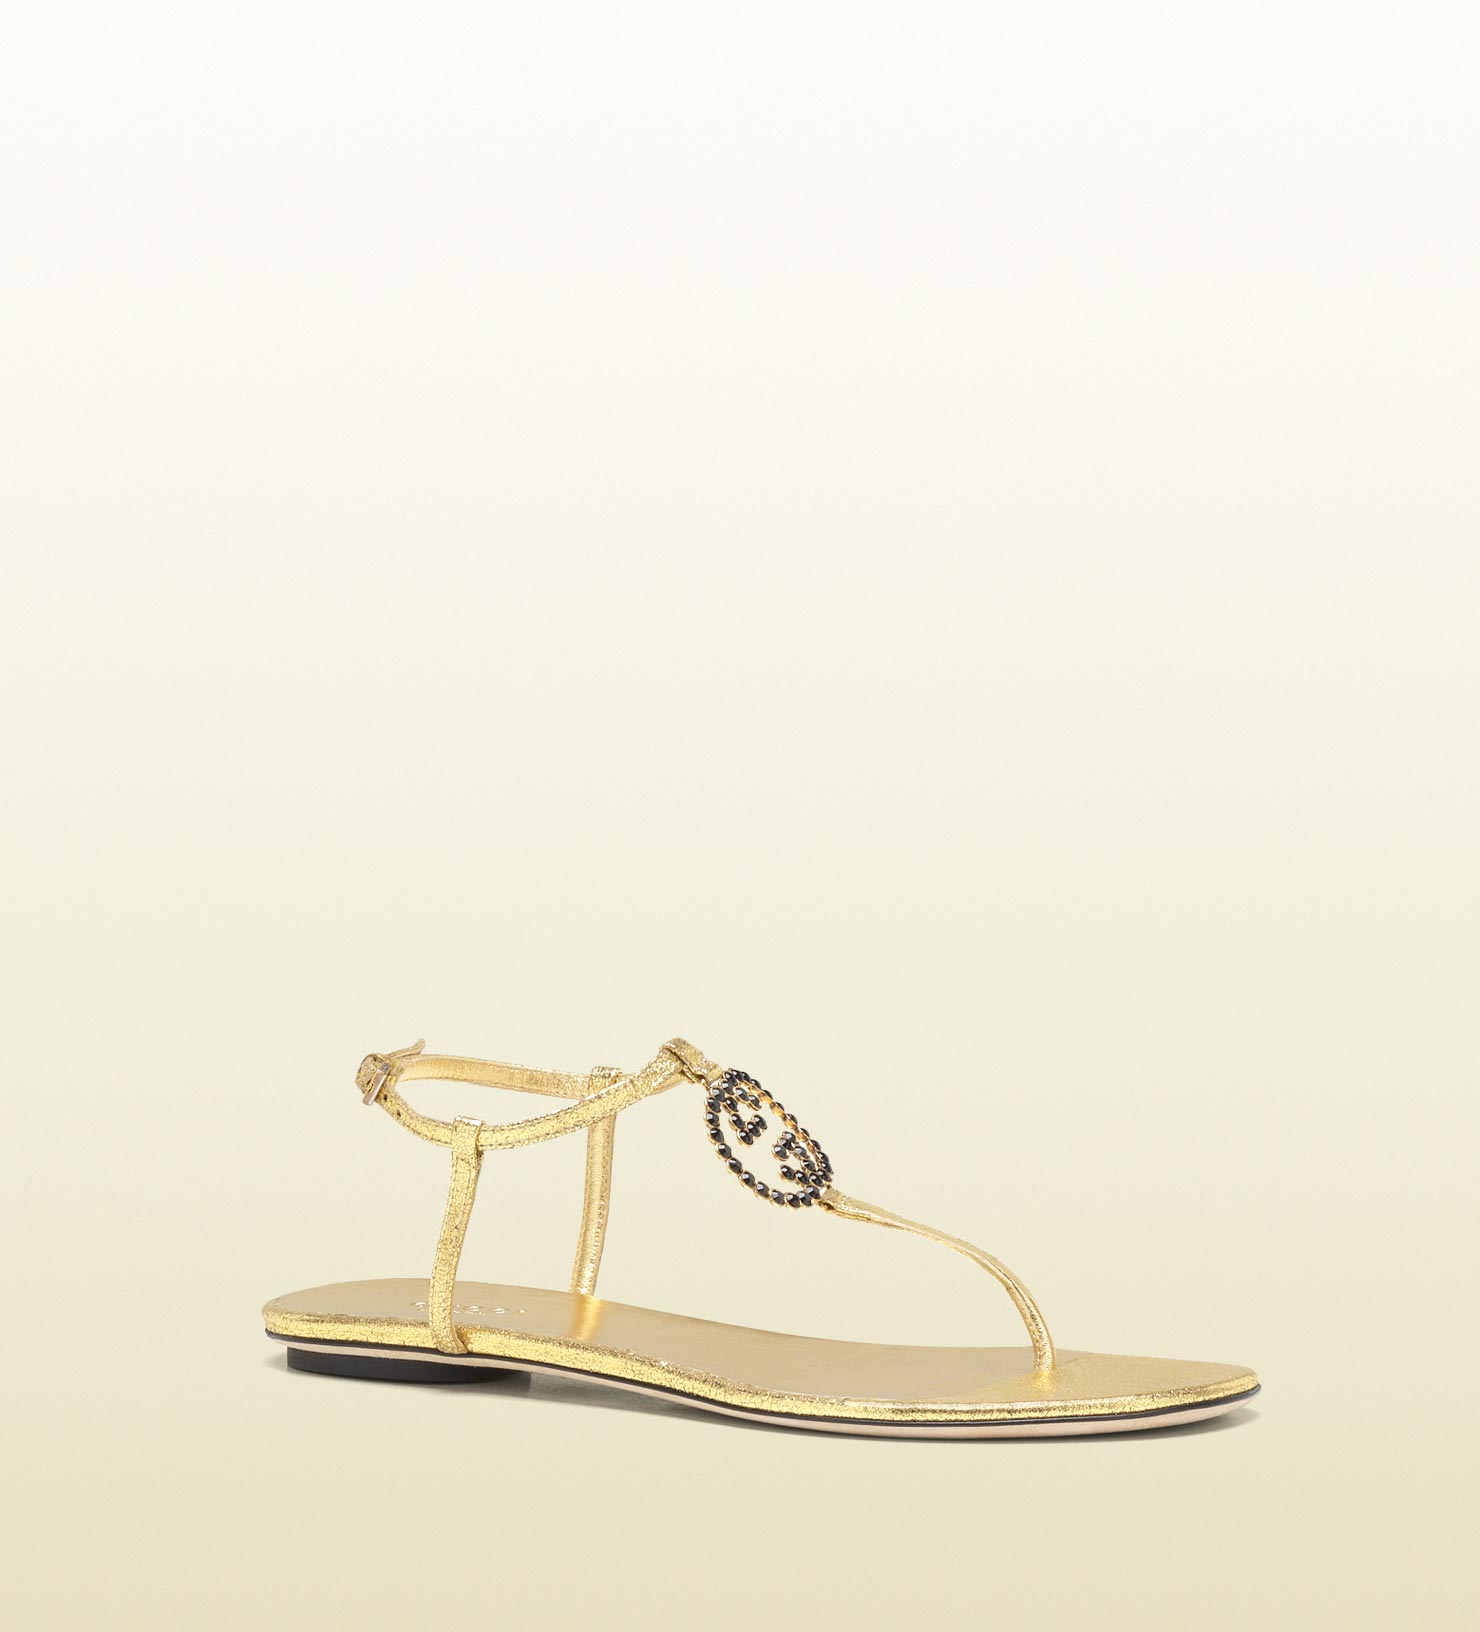 6724dd15a Gucci Areia Flat Thong Sandal with Signature Web in Brown - Lyst